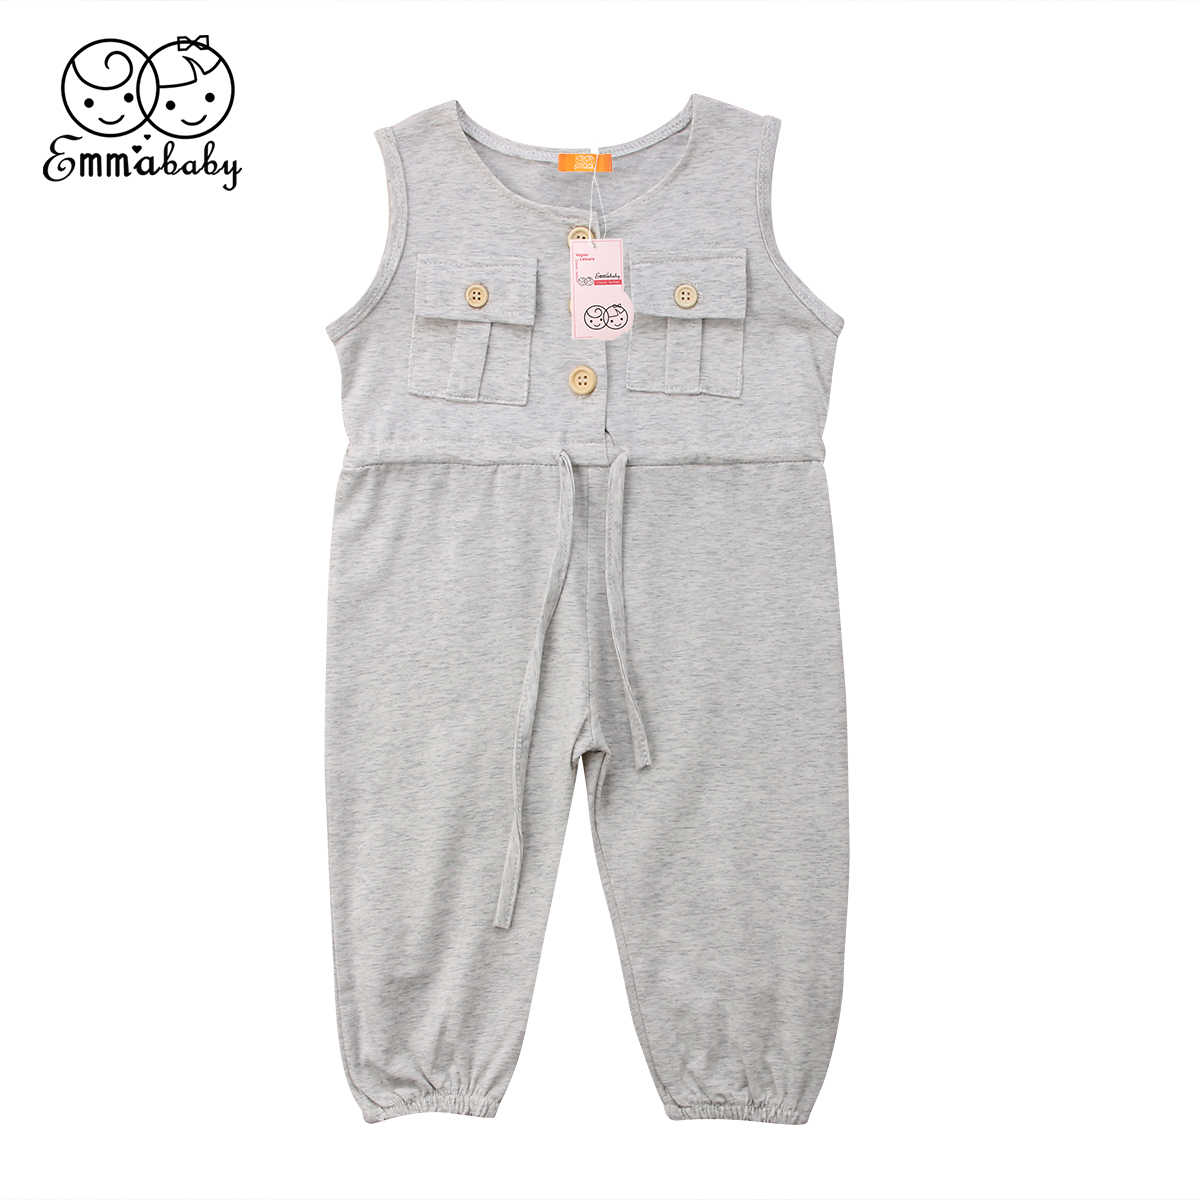 75613f4905f0e Newest Summer Baby Girl Strappy Sleeveless Romper Toddler Kids Jumpsuits  Sunsuit Casual Pocket Outfit Clothes for Girl